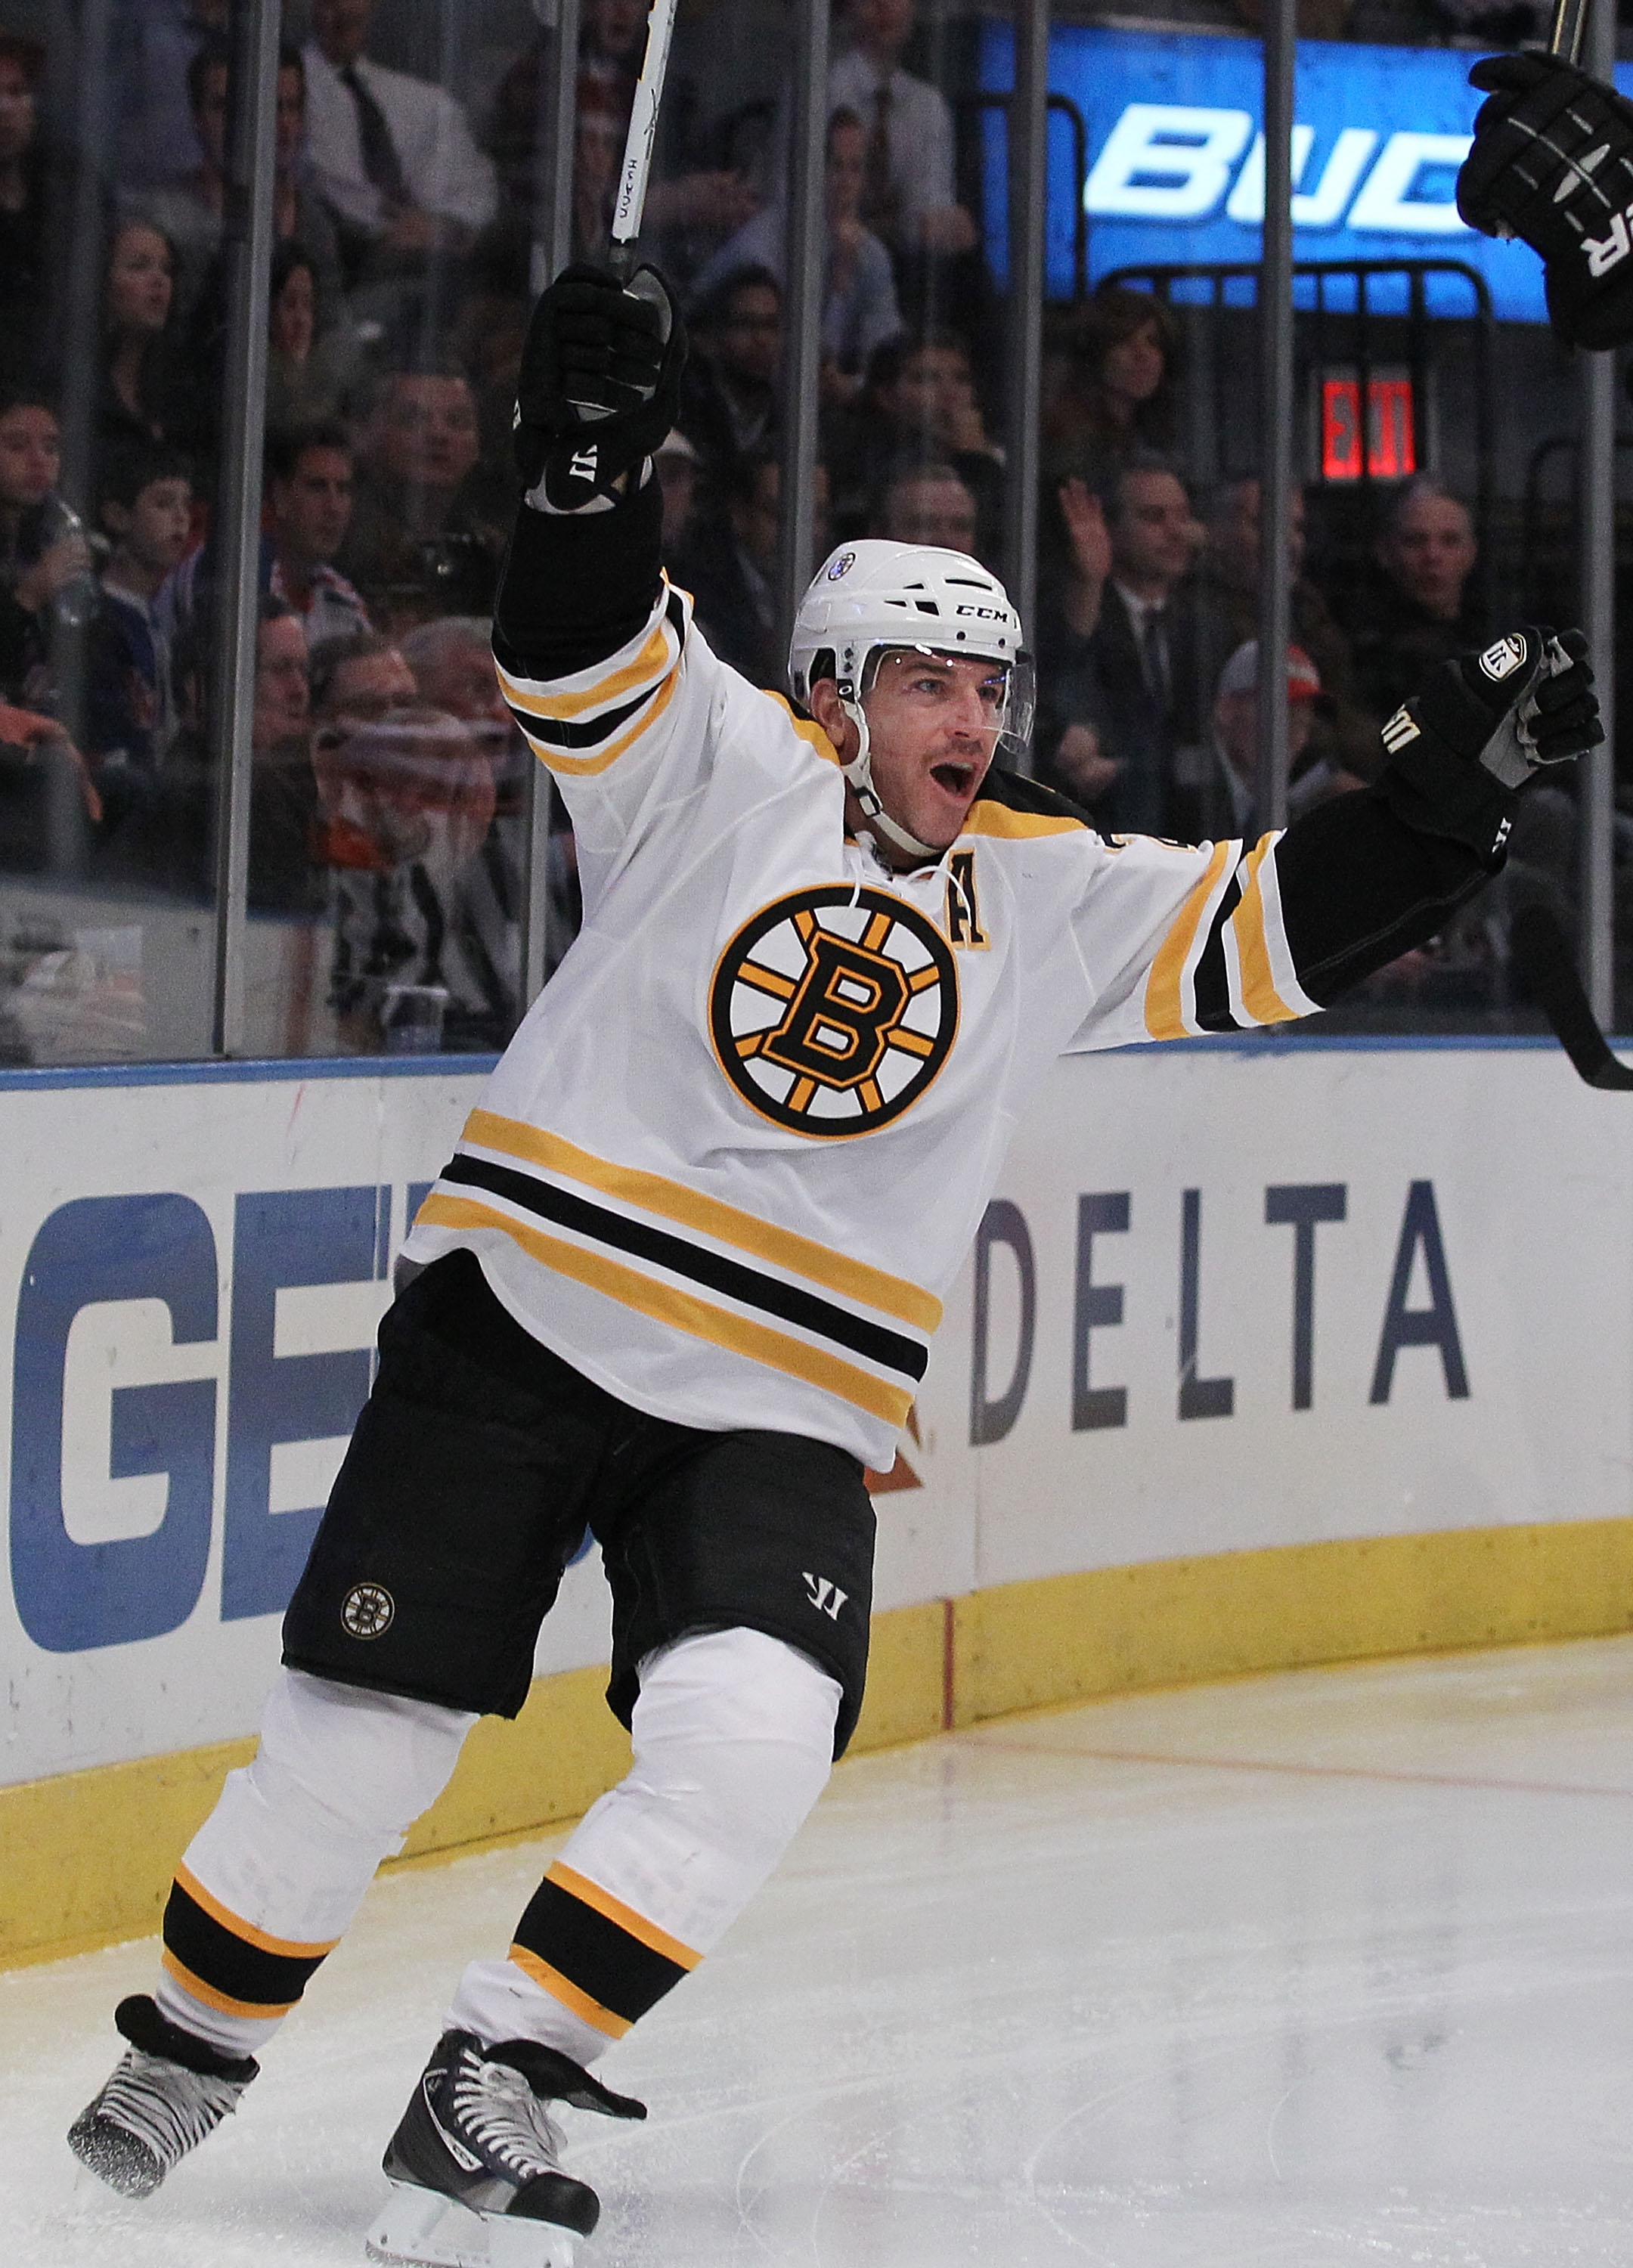 NEW YORK - NOVEMBER 17:  Mark Recchi #28 of the Boston Bruins celebrates a goal against the New York Rangers during their game on November 17, 2010 at Madison Square Garden in New York City.  (Photo by Al Bello/Getty Images)